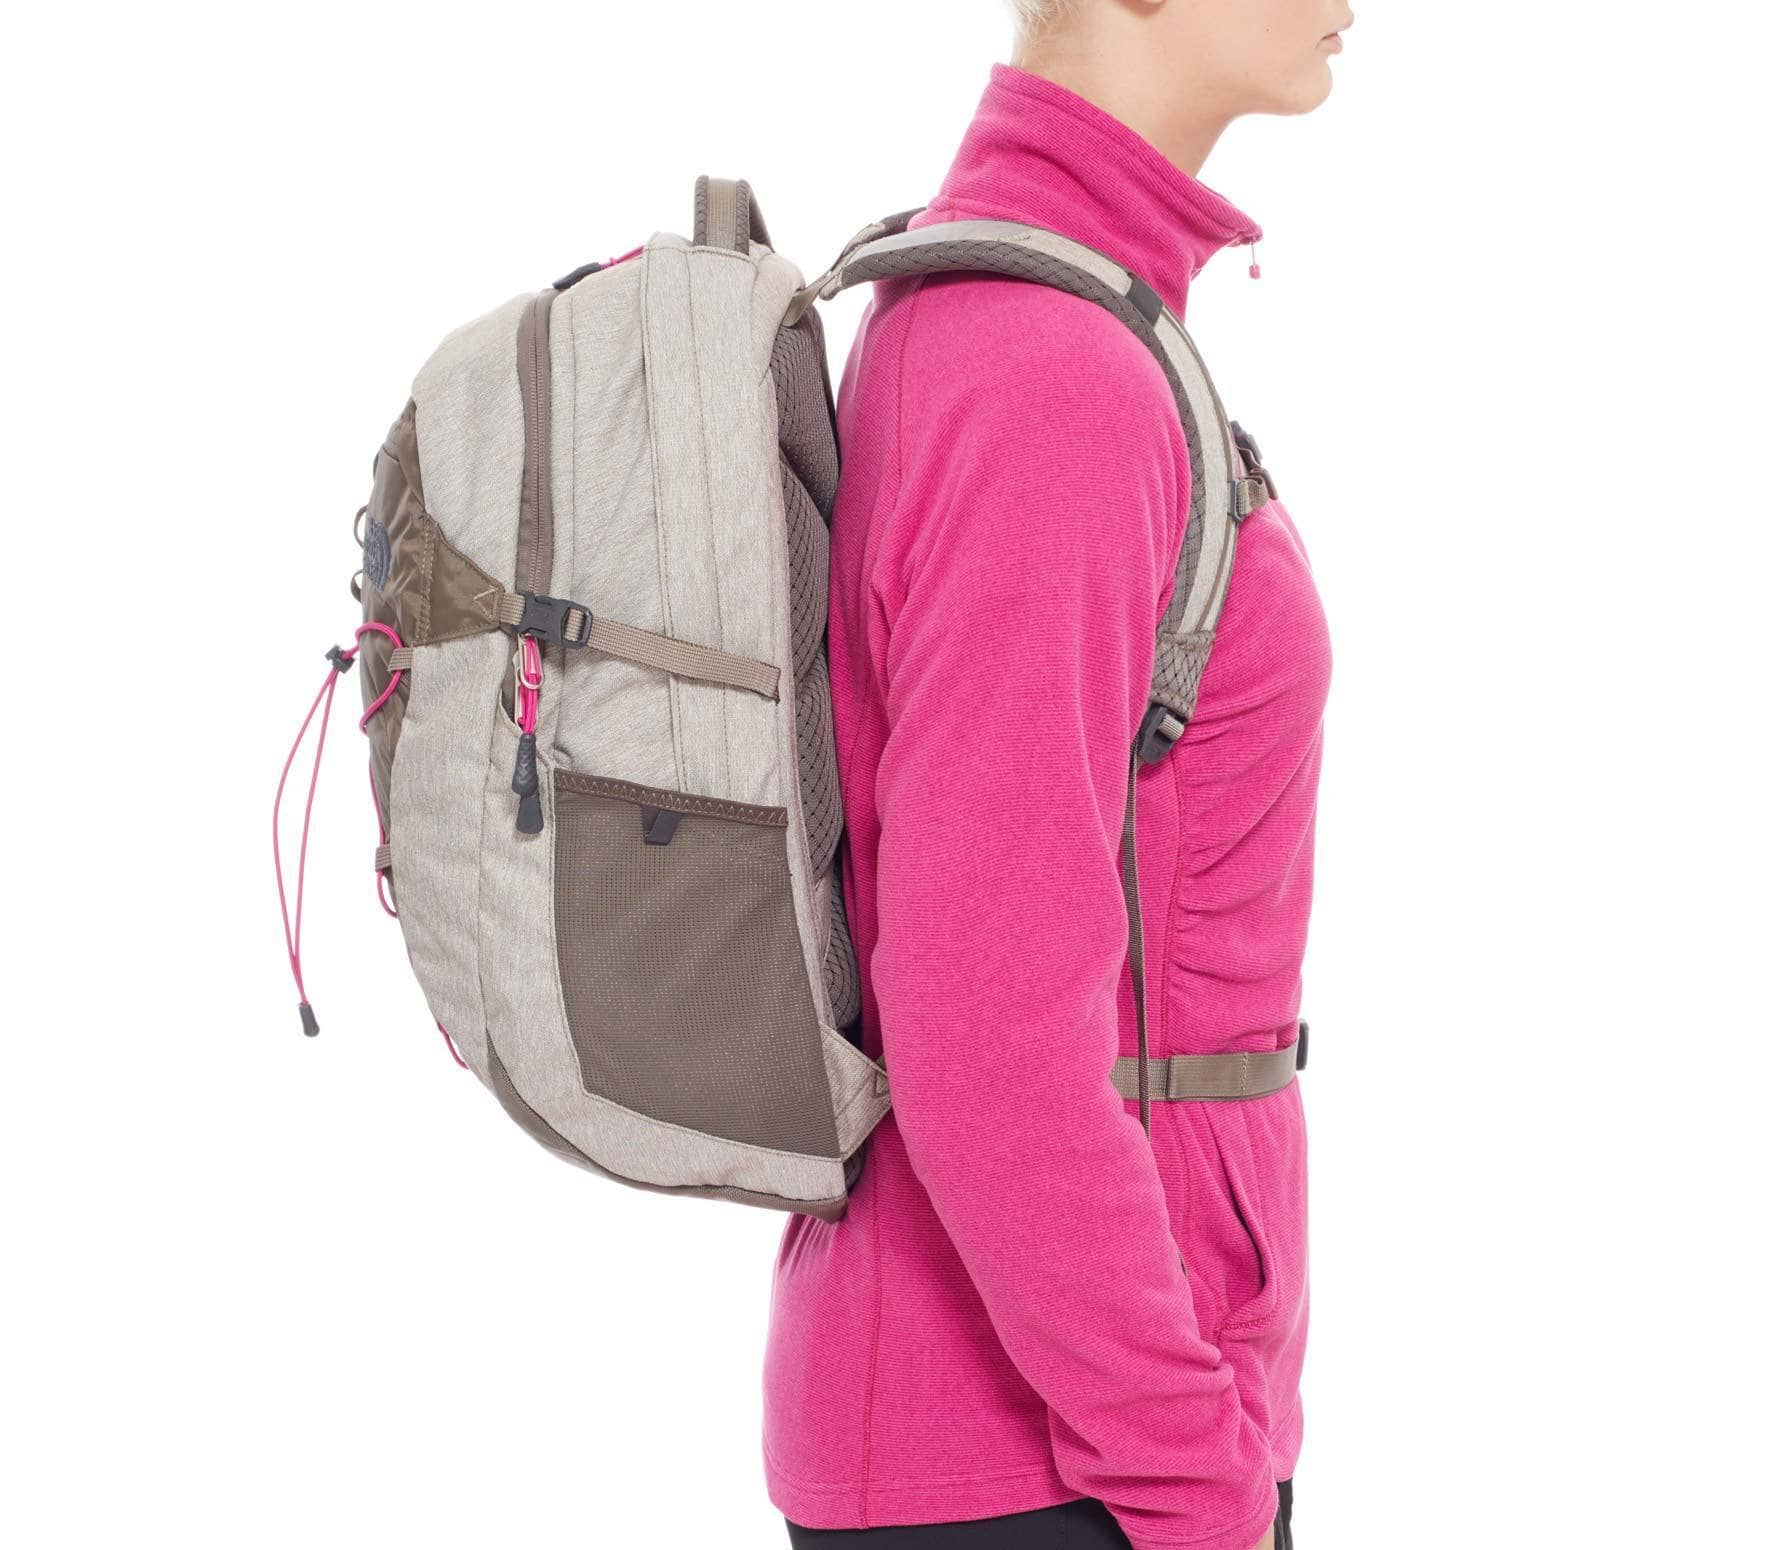 huge discount 6d393 70429 The North Face Borealis women's daypack